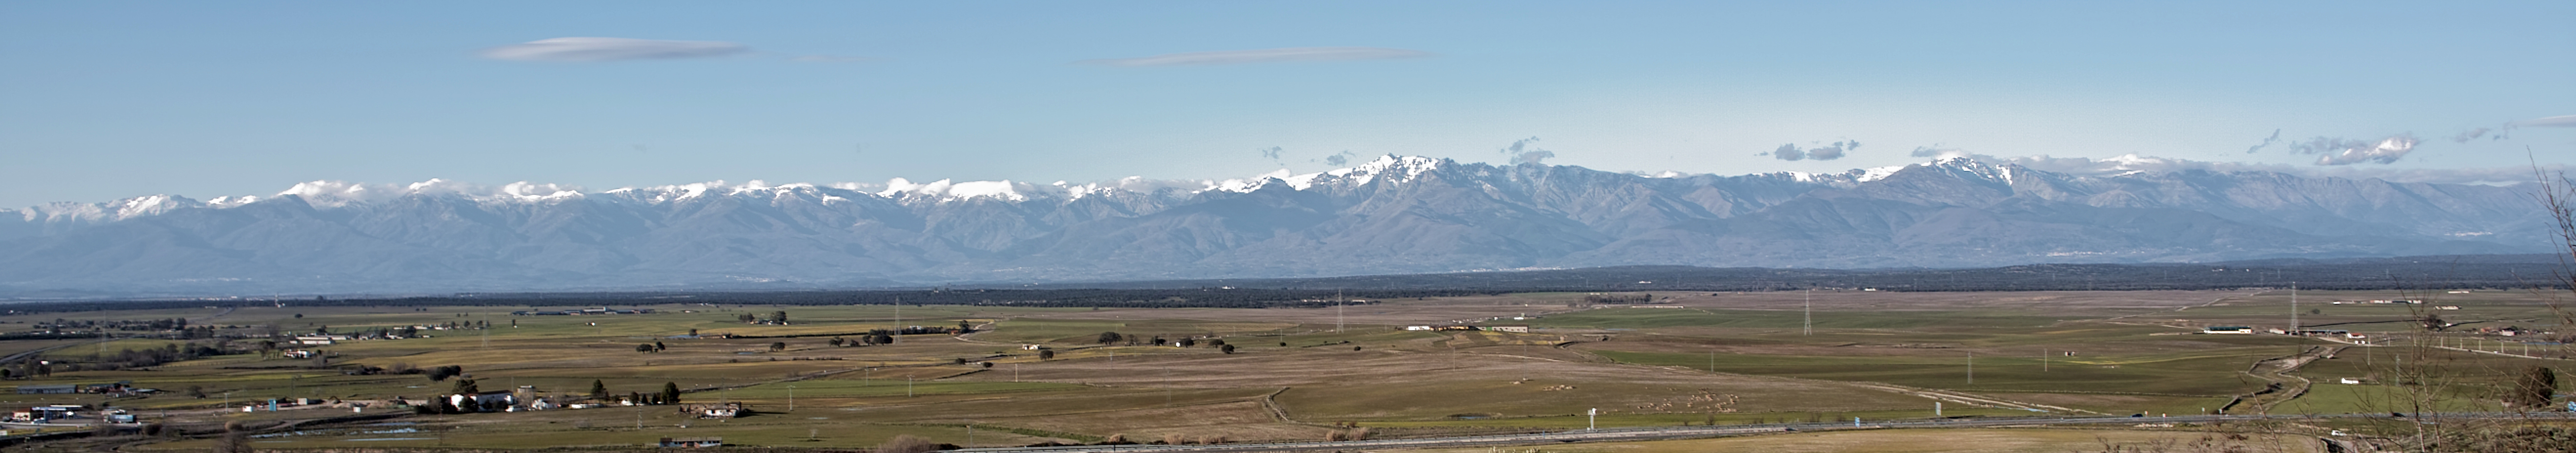 Image: The South face of the Sierra de Gredos mountain range, seen from Oropesa (Toledo). Source: Wikimedia Commons, user: FDV. CC BY-SA 3.0.